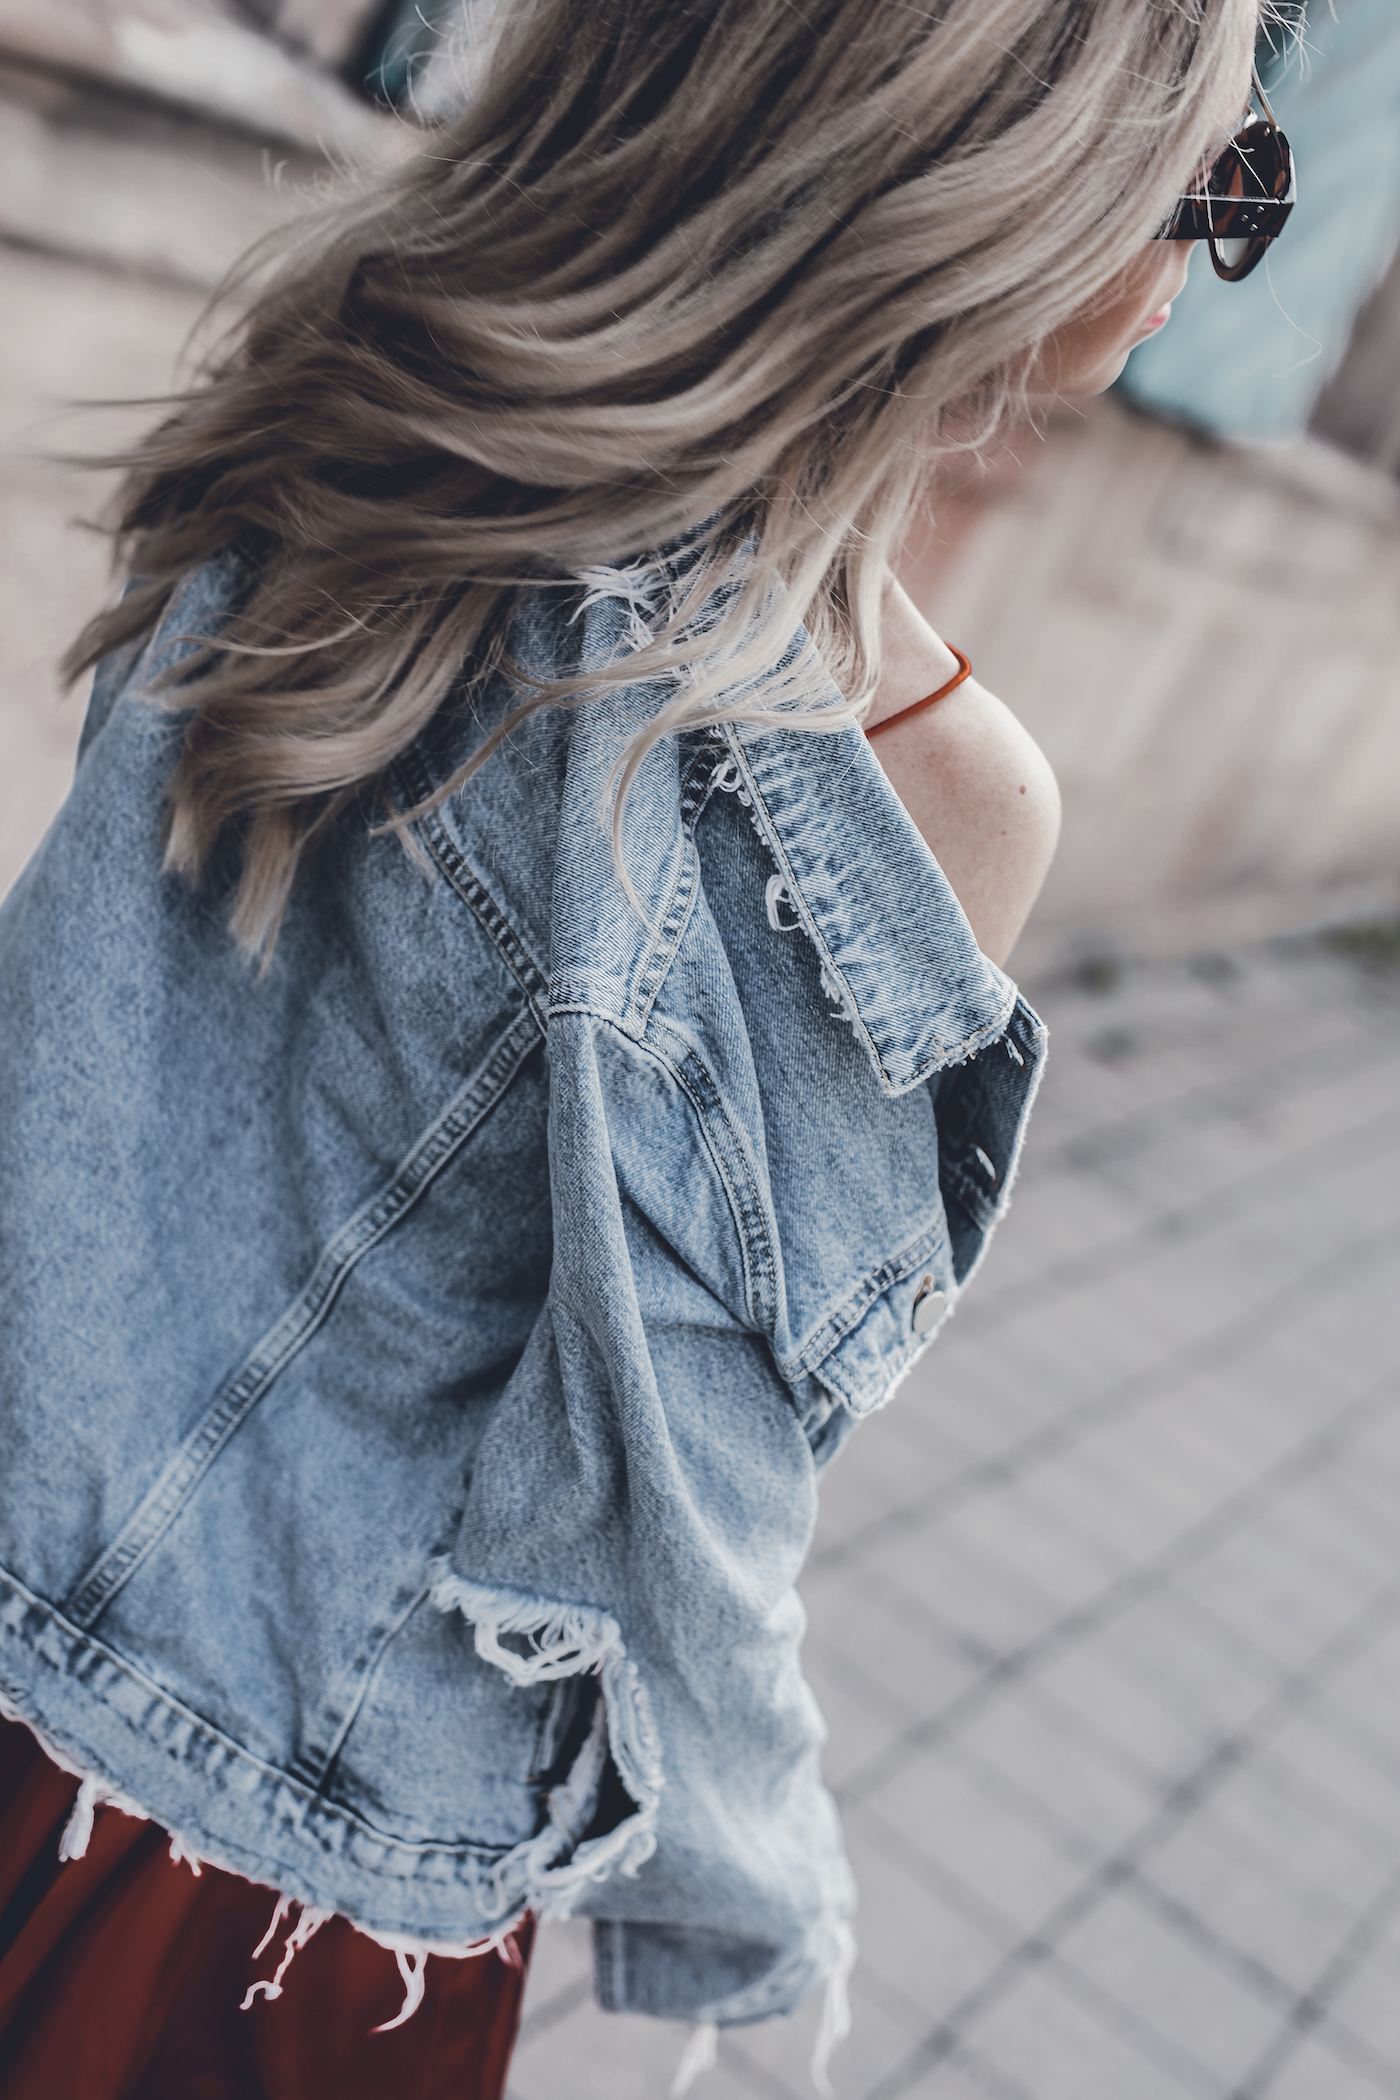 How to fall back in love with your closet wardrobe clothes   Want Get Repeat Fashion Blog Erlangen Nürnberg Mode Blog